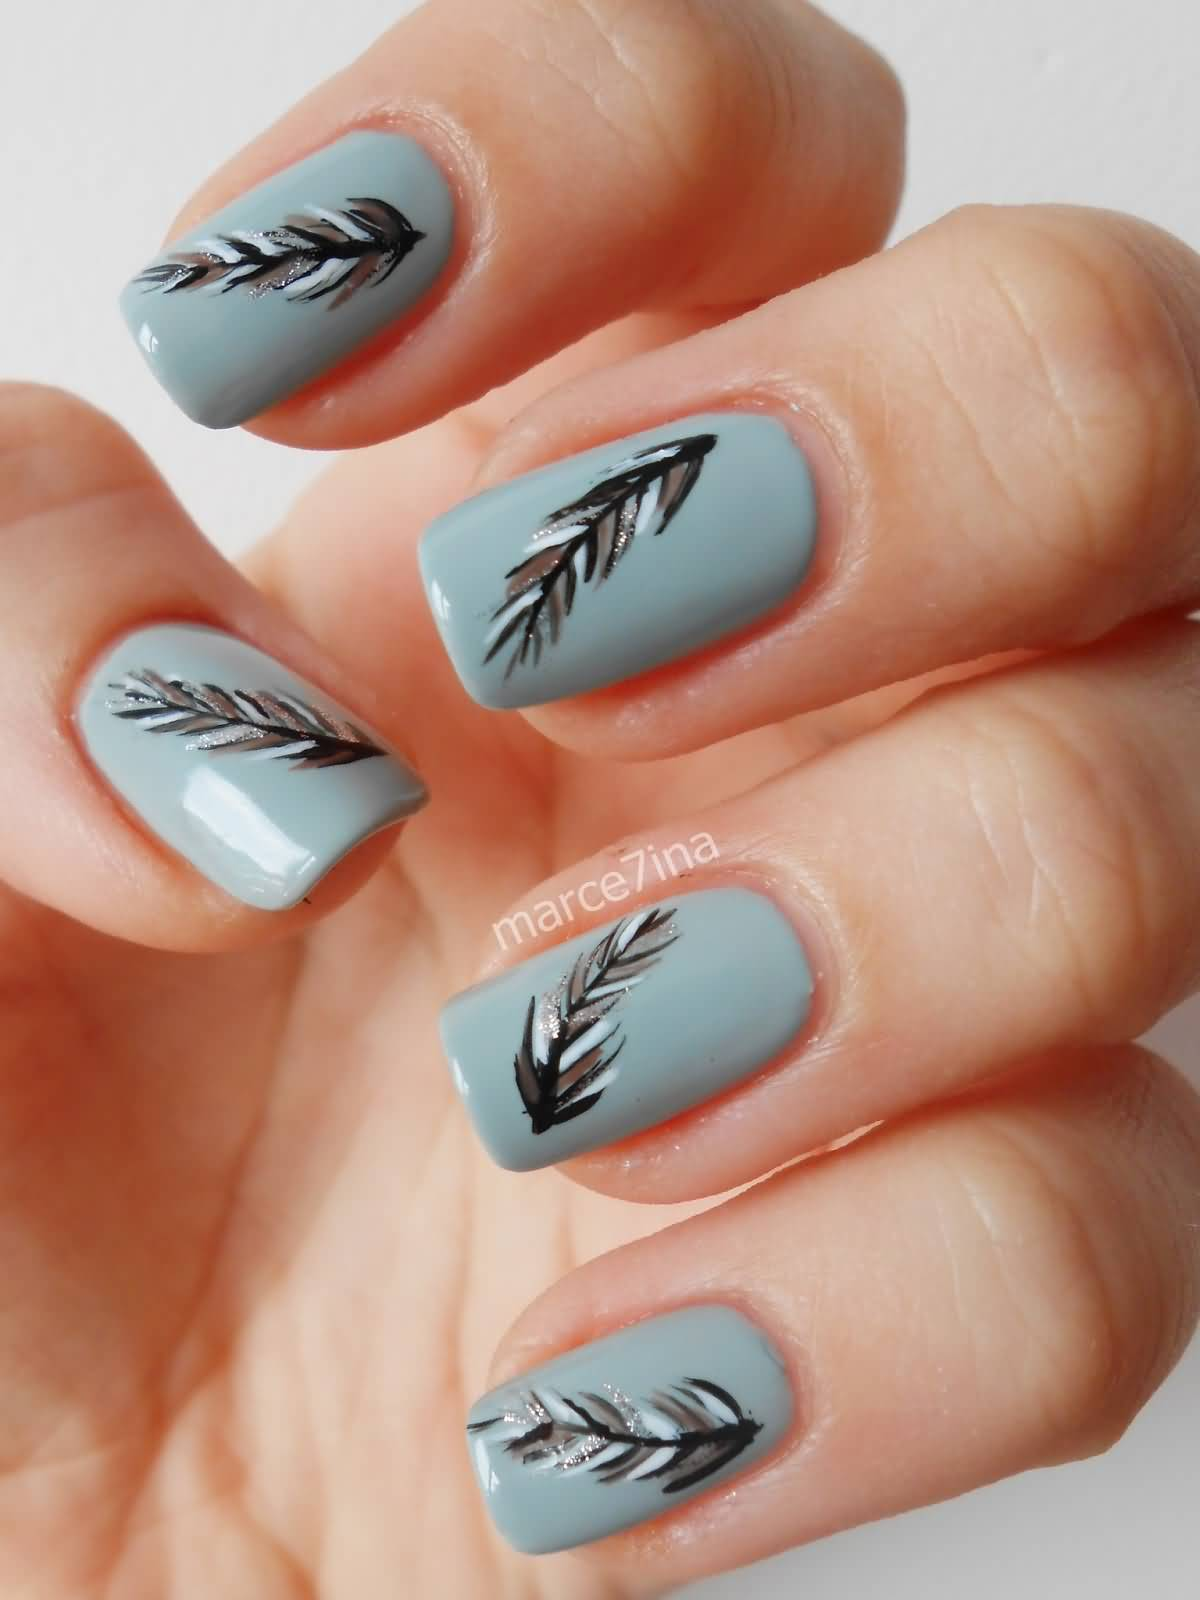 Grey Nails With Feathers Nail Art Design - 50 Latest Feather Nail Art  Design Ideas - - Grey Nail Art Graham Reid